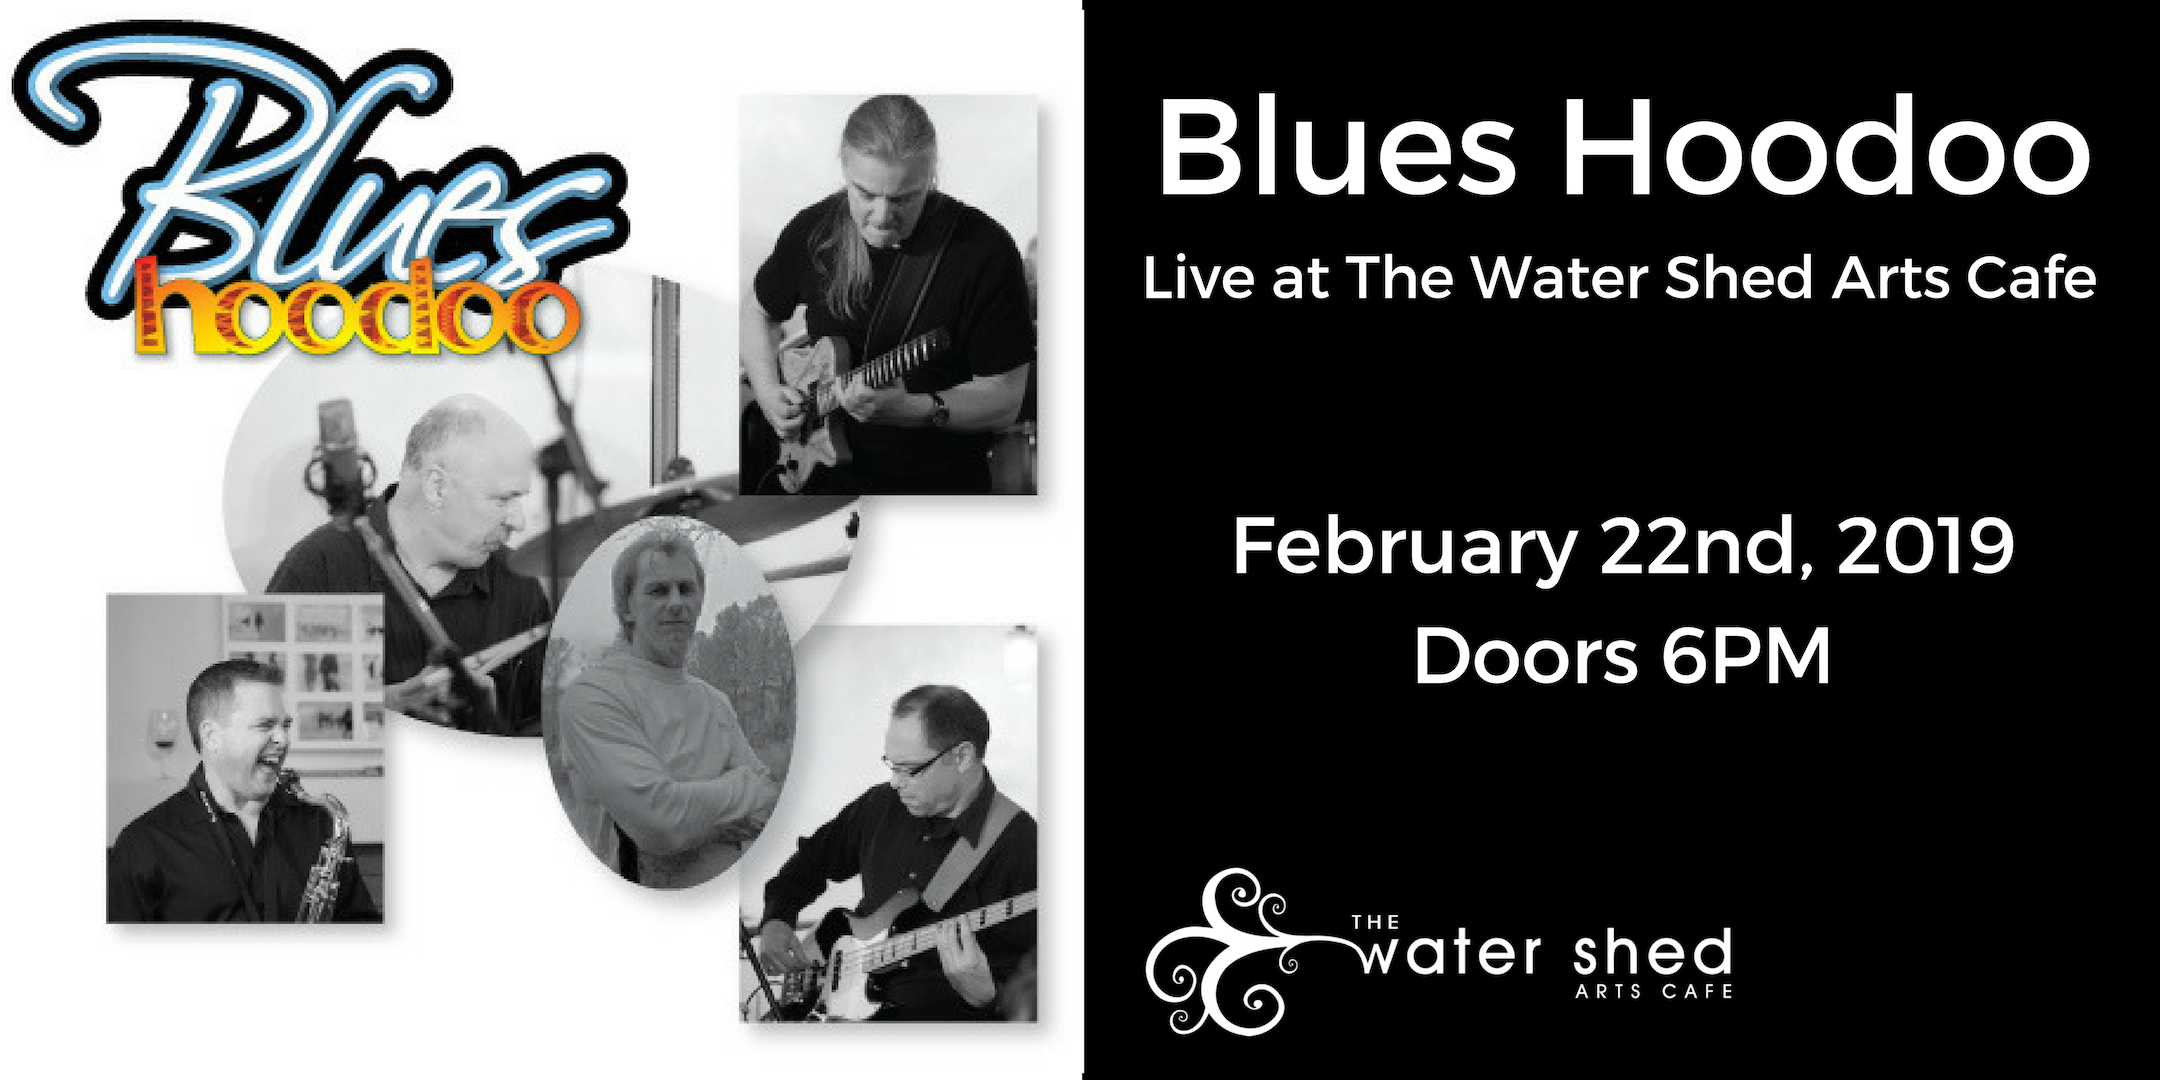 Blues Hoodoo Live at the Water Shed | The Water Shed Arts Cafe